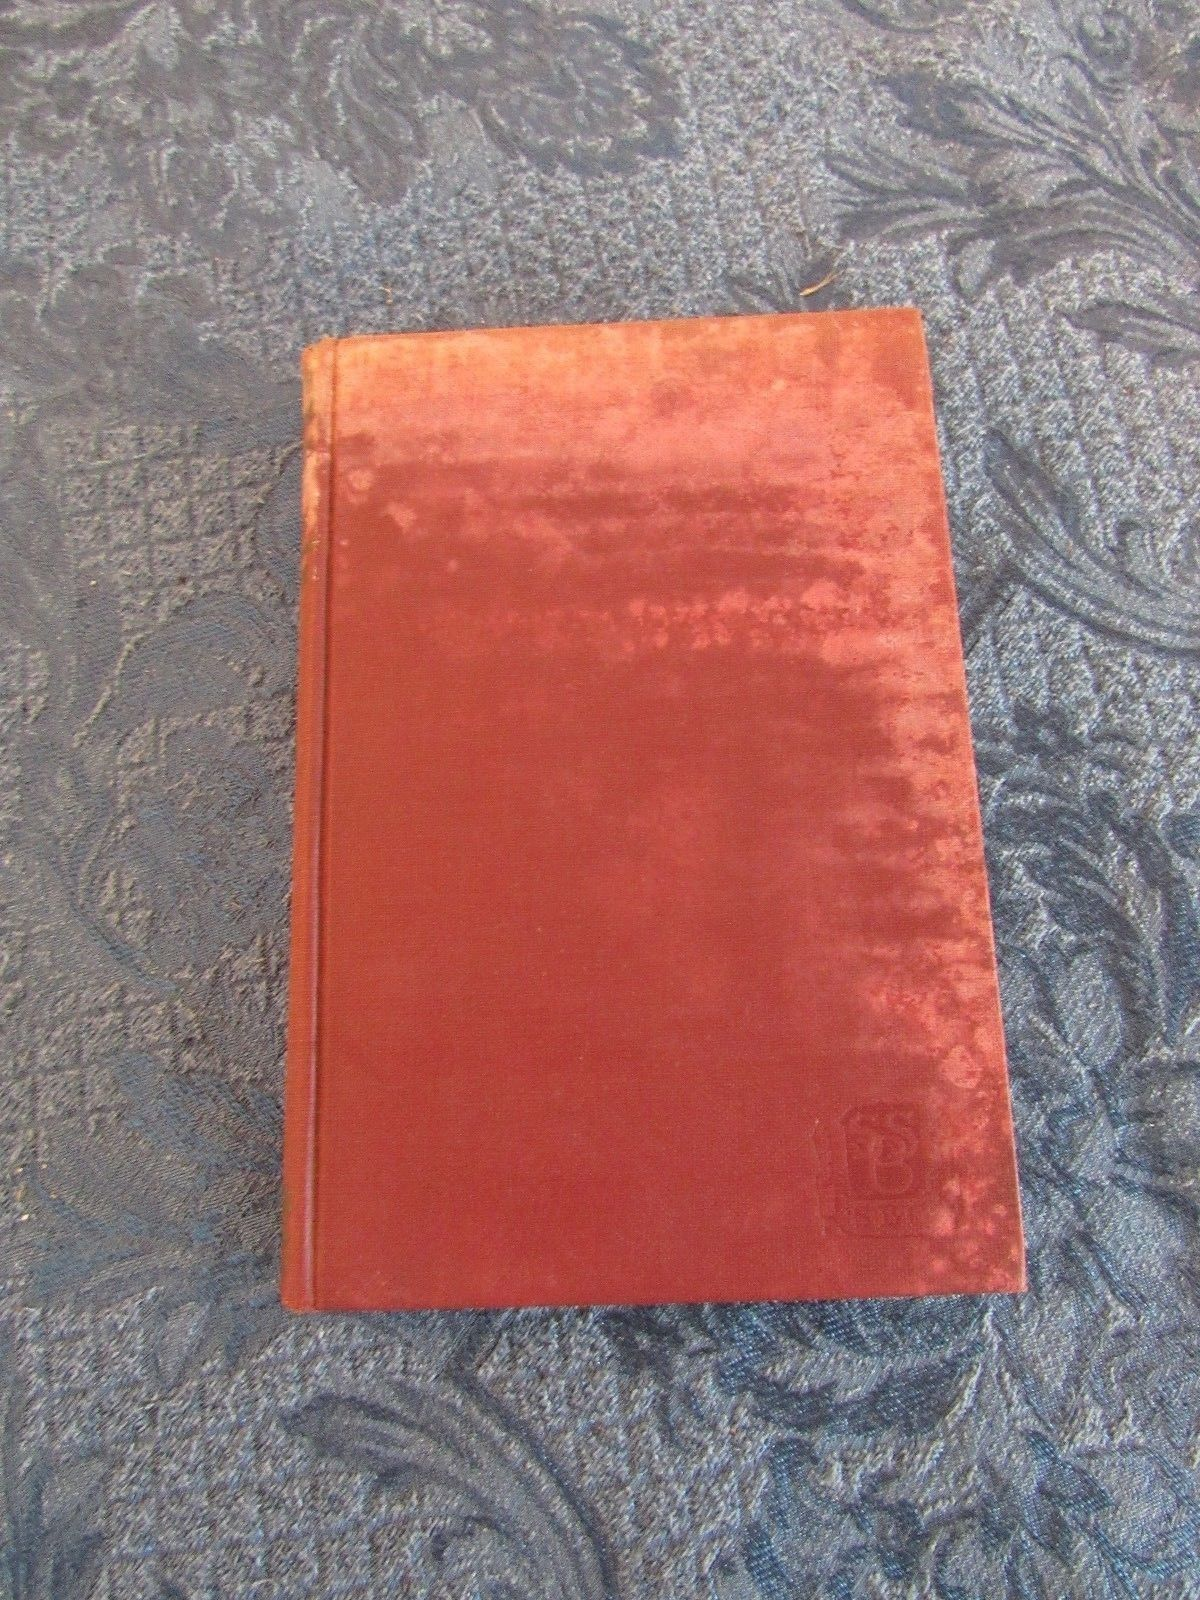 The Ten Greatest Sayings of Jesus by J.C. Massee Hardcover Book 1927